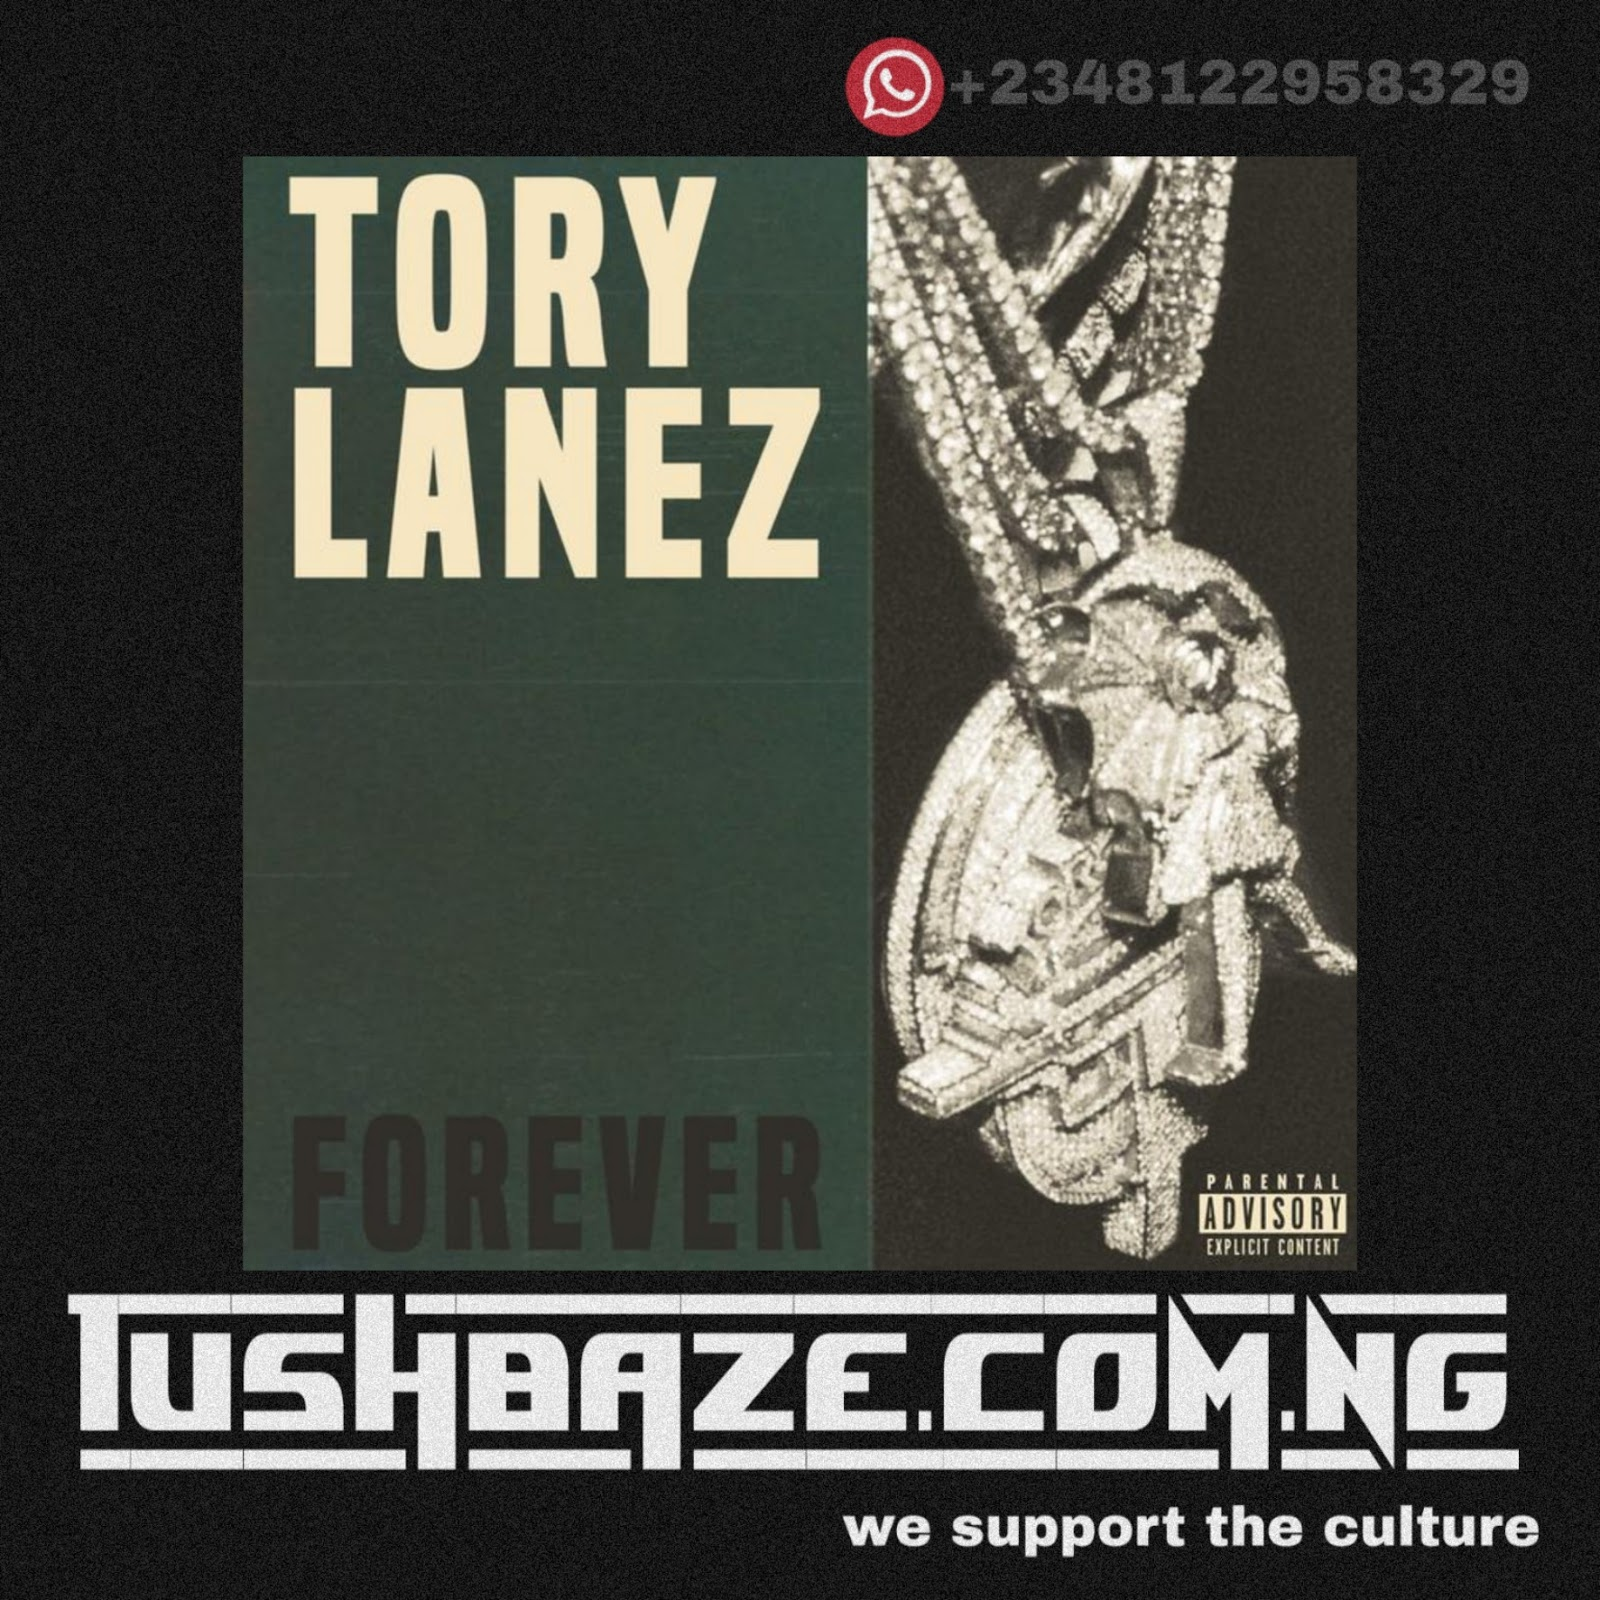 Forever - Tory Lanez Free Mp3 Download and Stream